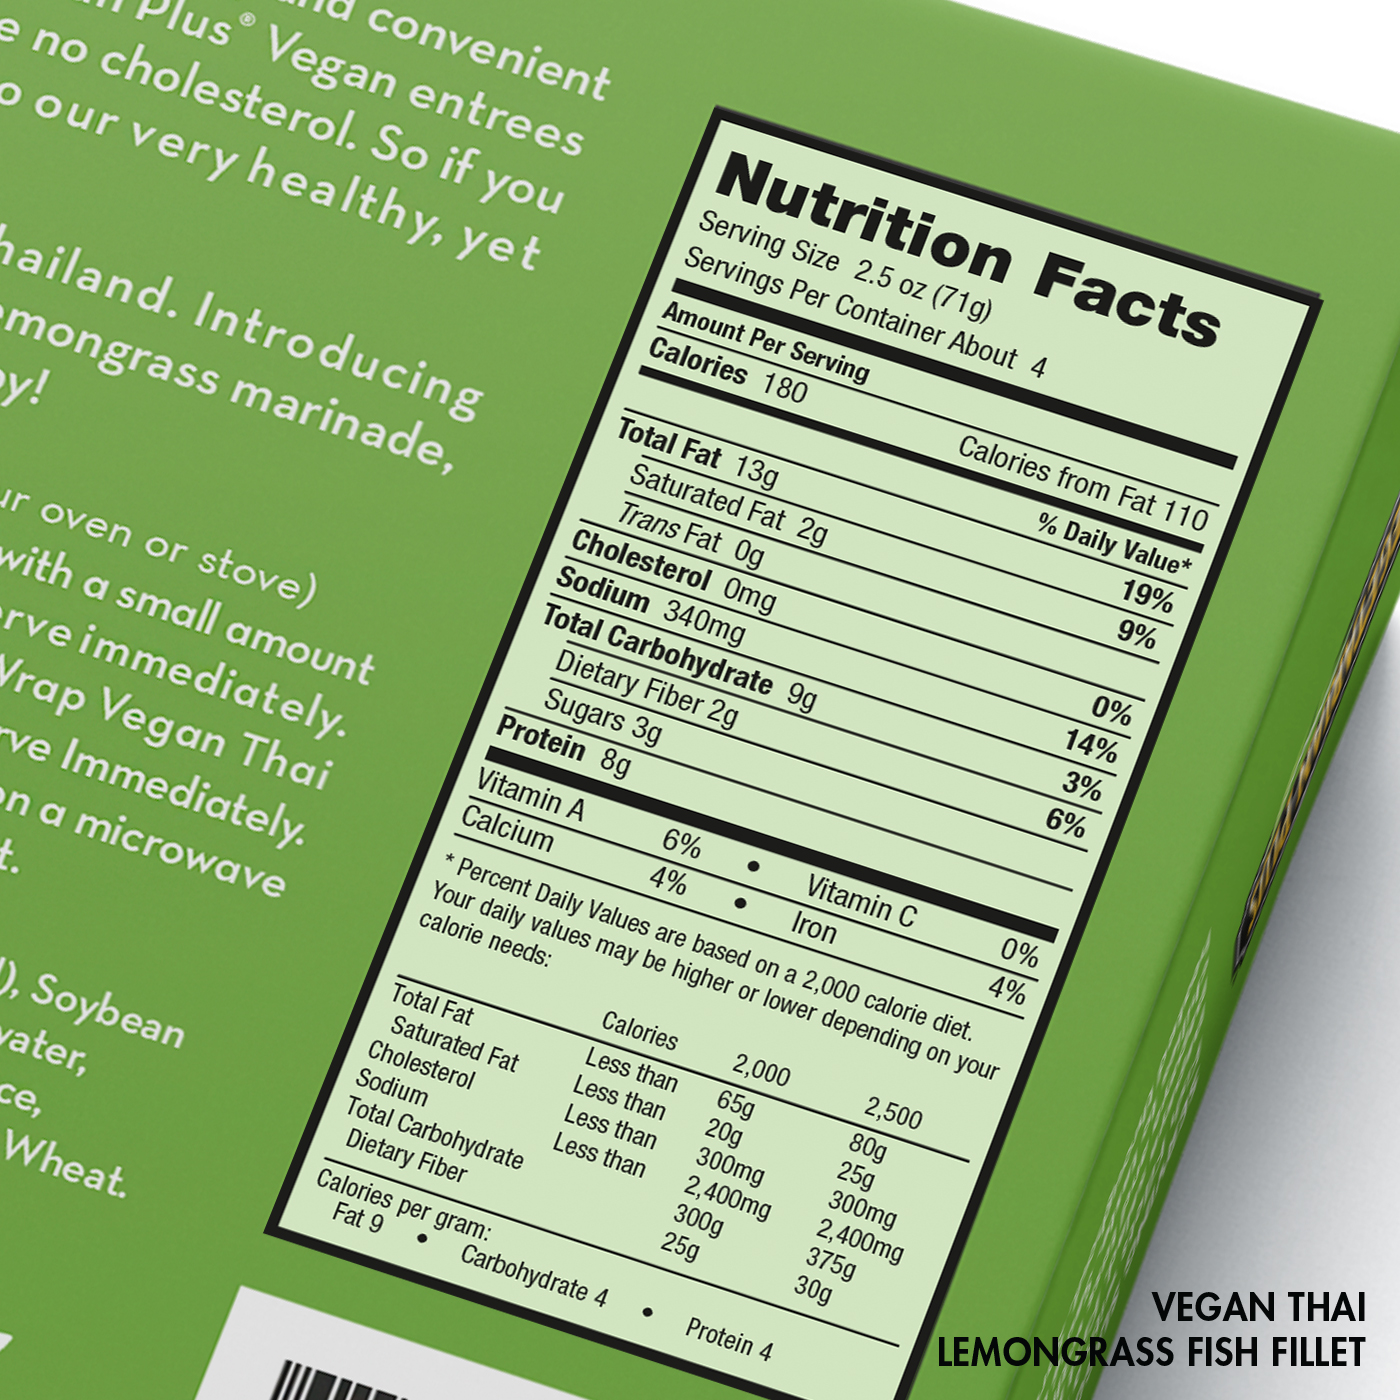 Vegan Thai Lemongrass Fish Fillets Nutrition Facts